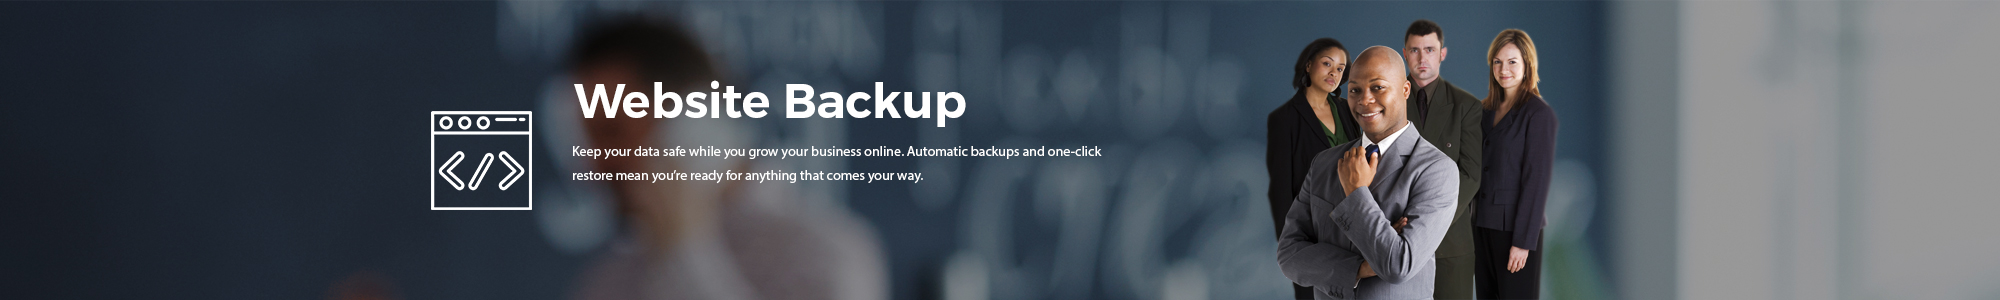 website backup automated cloud backup